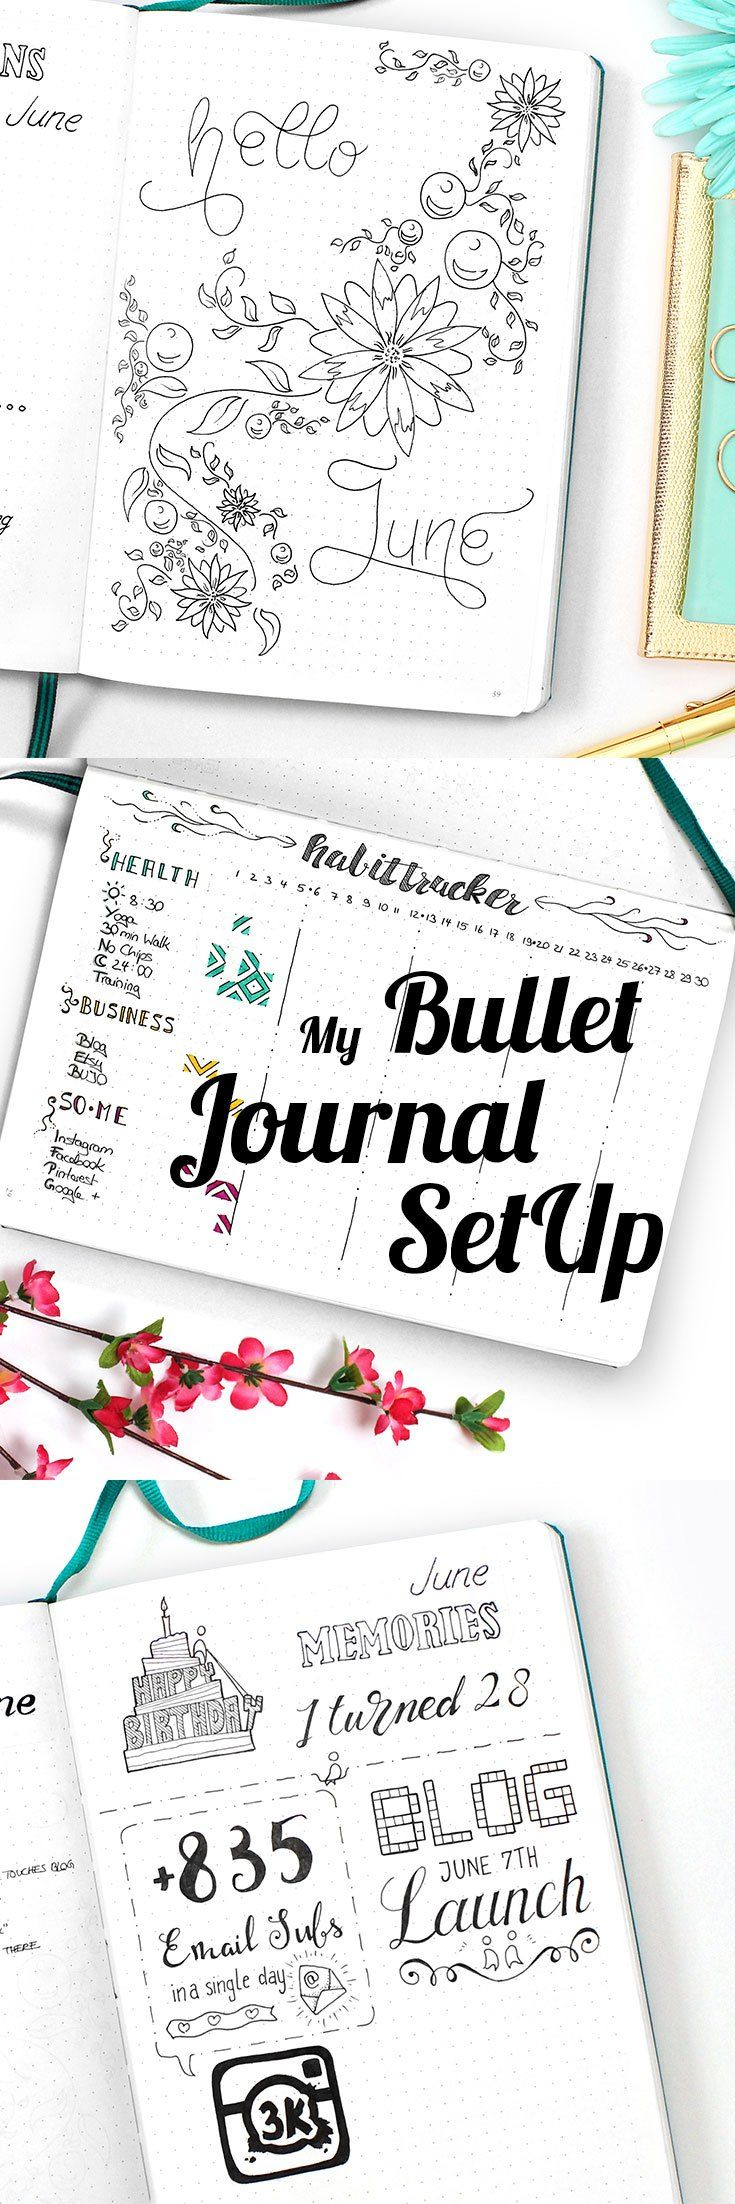 My Bullet Journal is my favorite place to be creative. I cannot only use it as my Planner, but also as my Notebook and Sketchbook. It's so unbelievable versatile like no other system I have used so far. And I have tried out a lot, I can promise you that!  To start my Bullet Journal Series off properly I decided to give you a glimpse in this months set up. That way you get a better idea on how I use it and hopefully find something that inspires you!